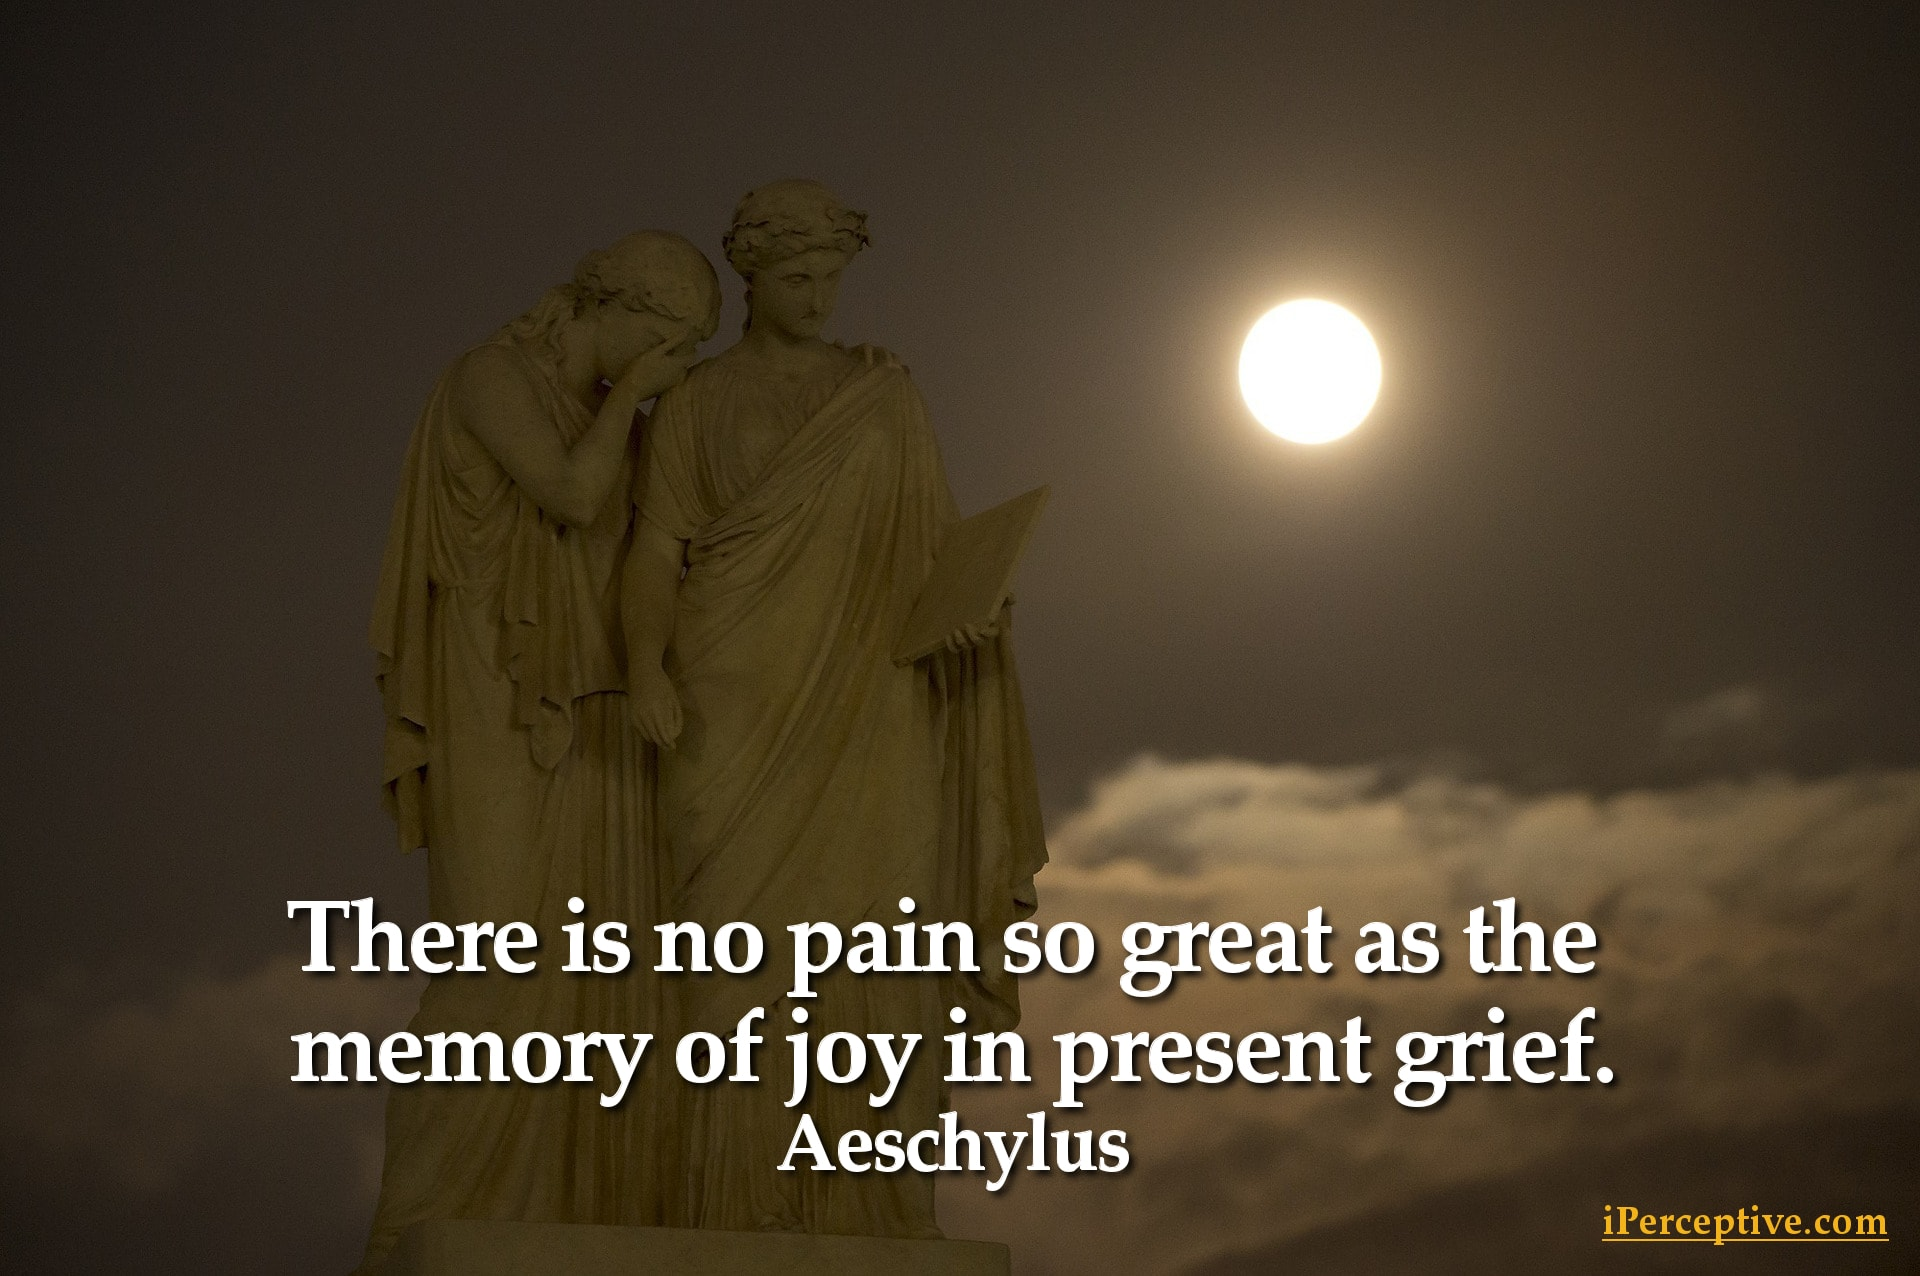 Aeschylus Quote: There is no pain so great as the memory of joy in present grief...